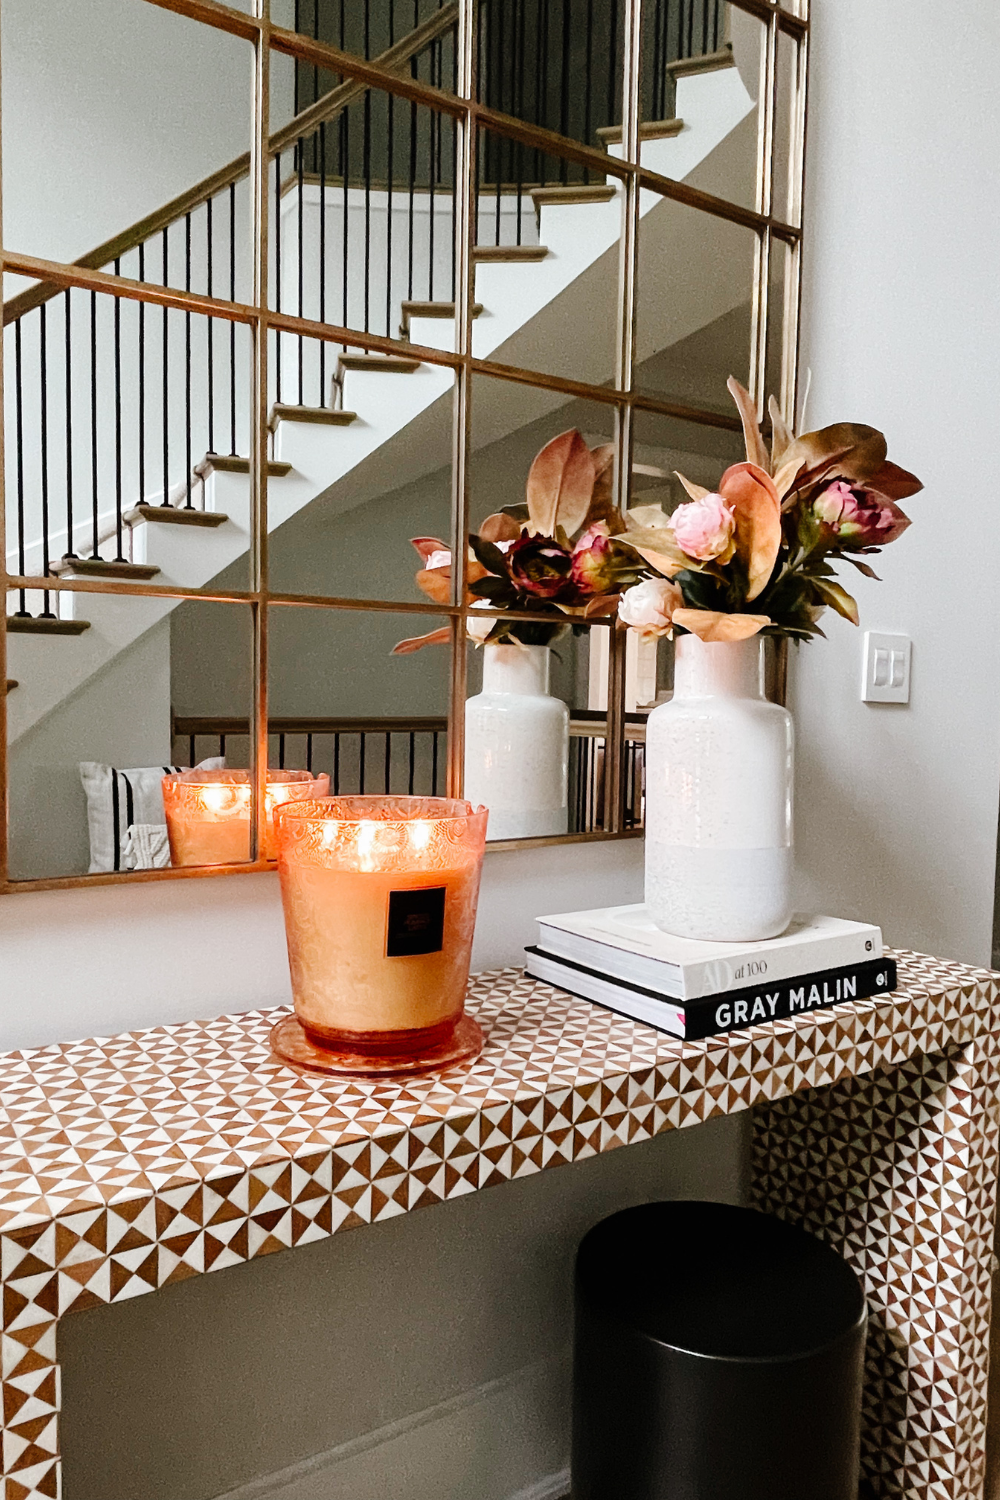 How to transition to fall home decor: fall candles